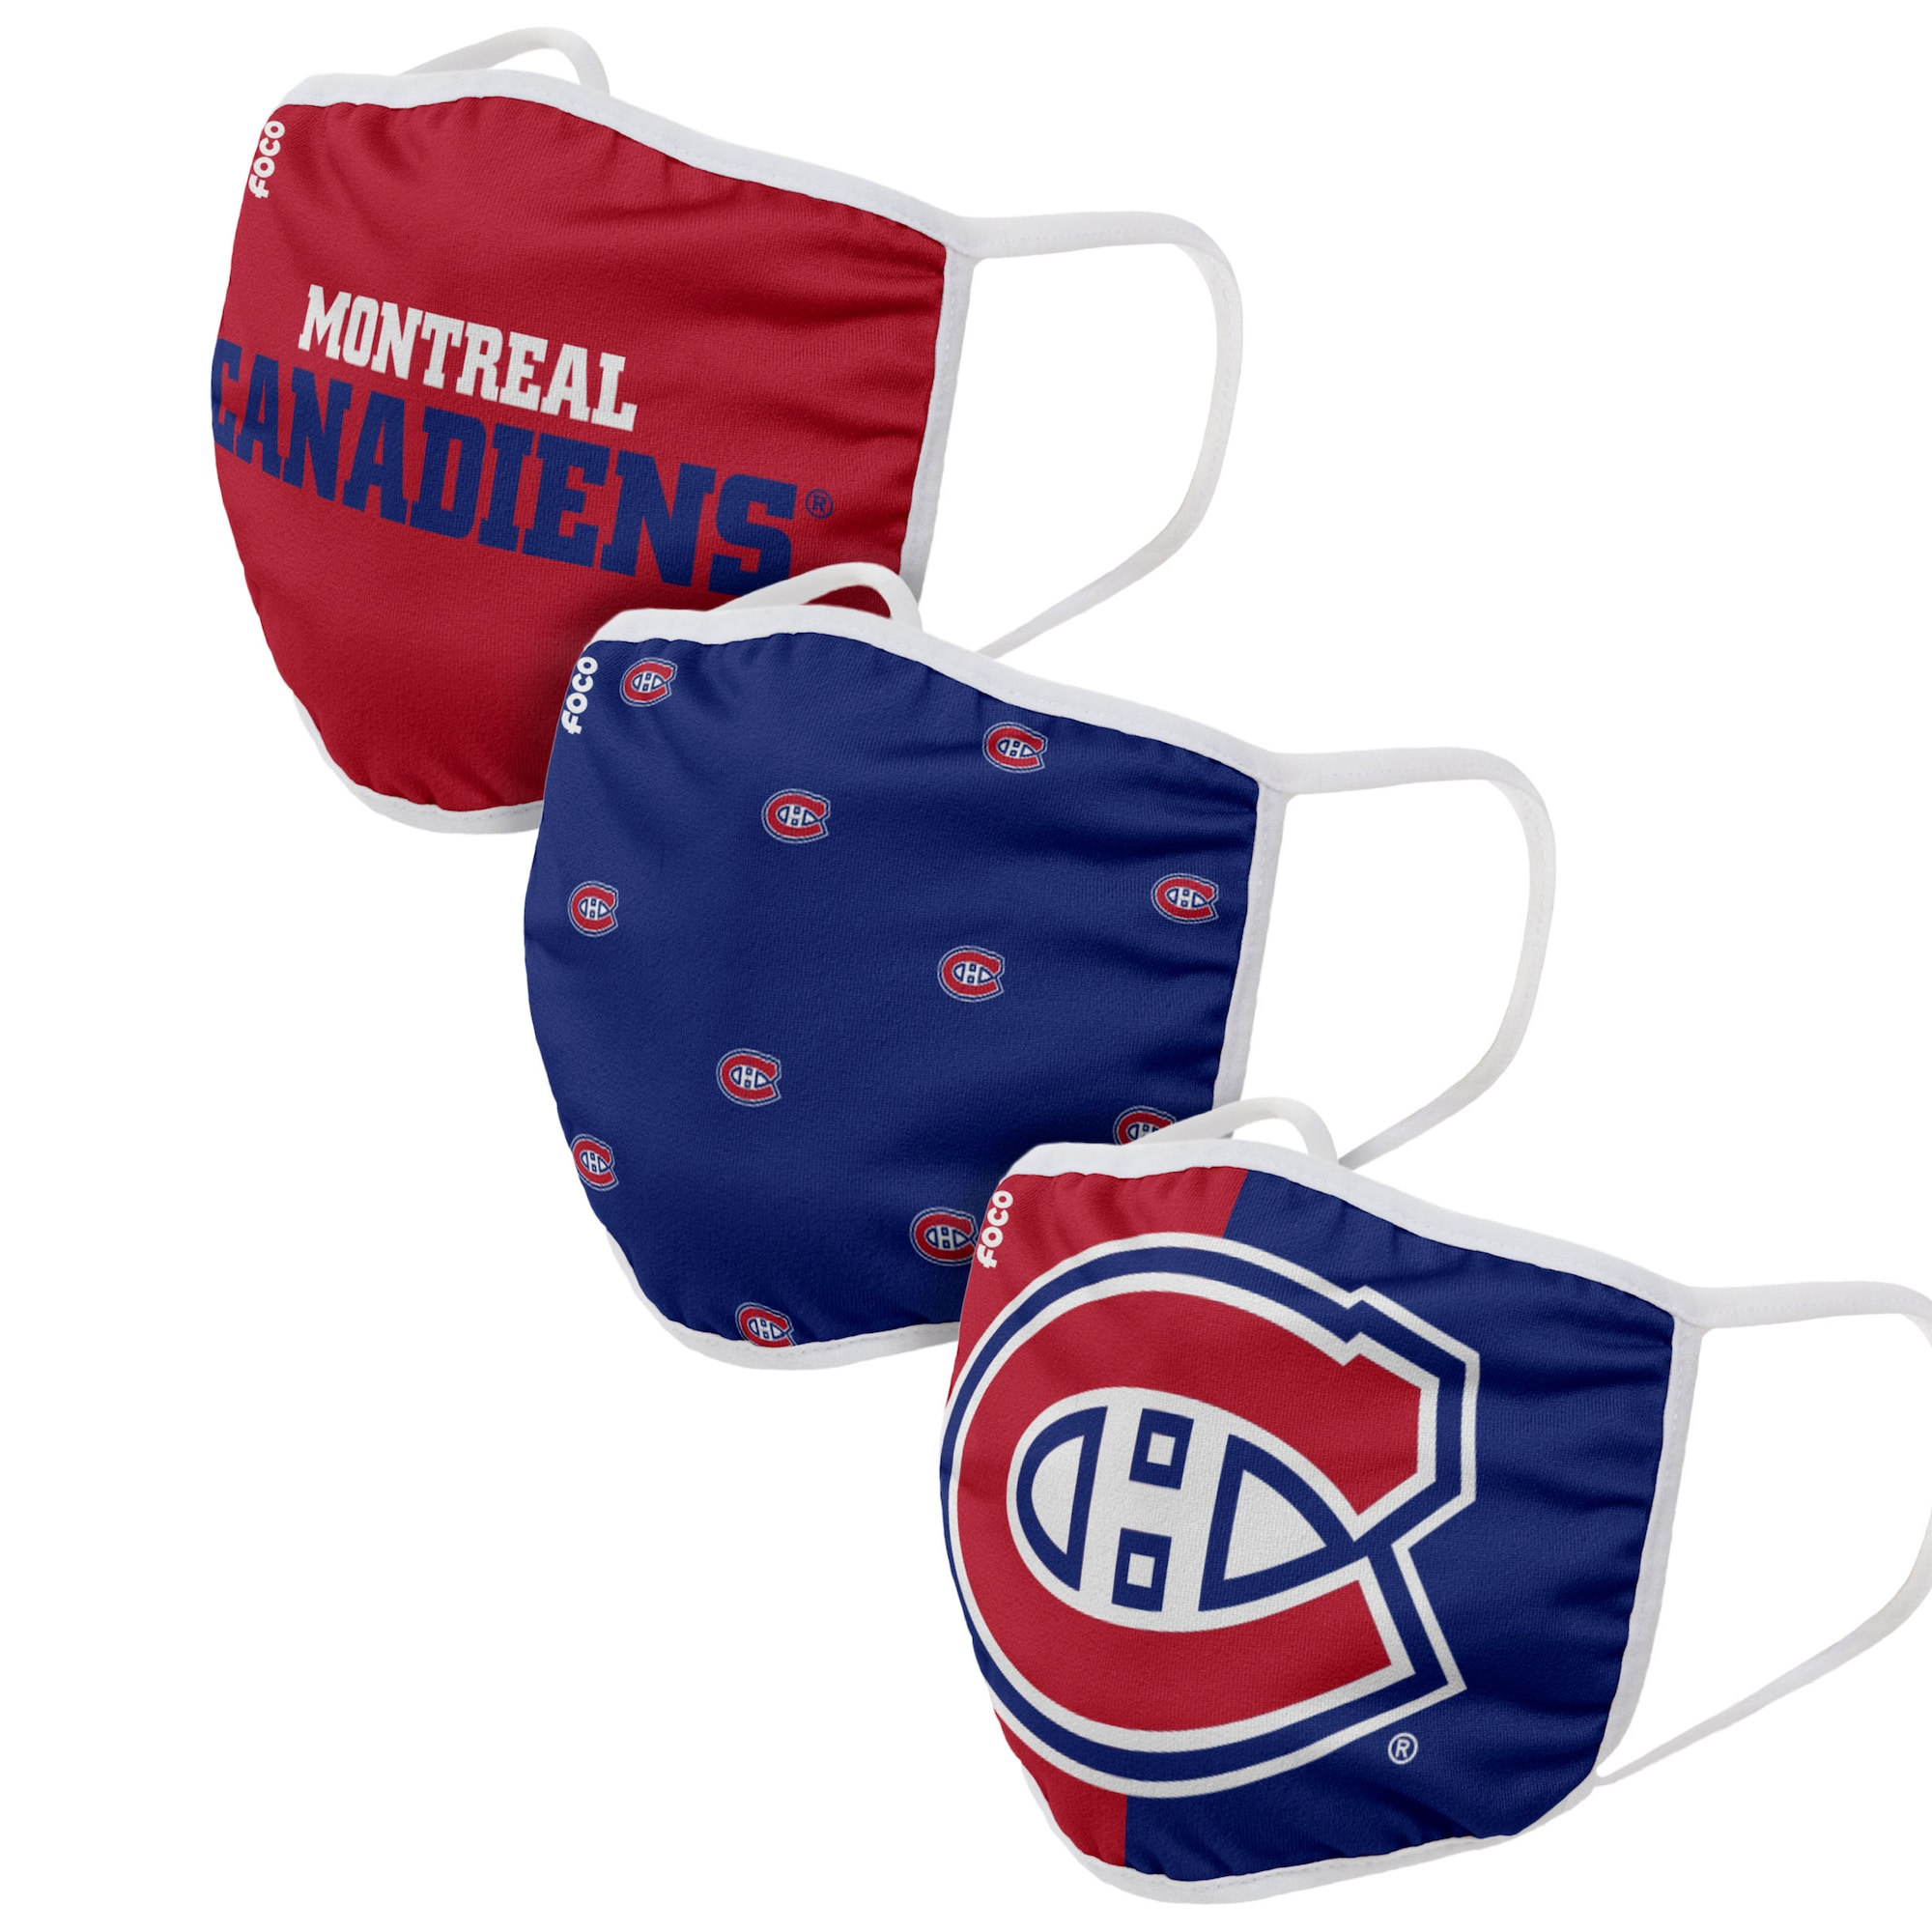 New Non Medical Habs Washable 3 Pack Face Mask With Filter Adults Kid Sizes Breathesafely